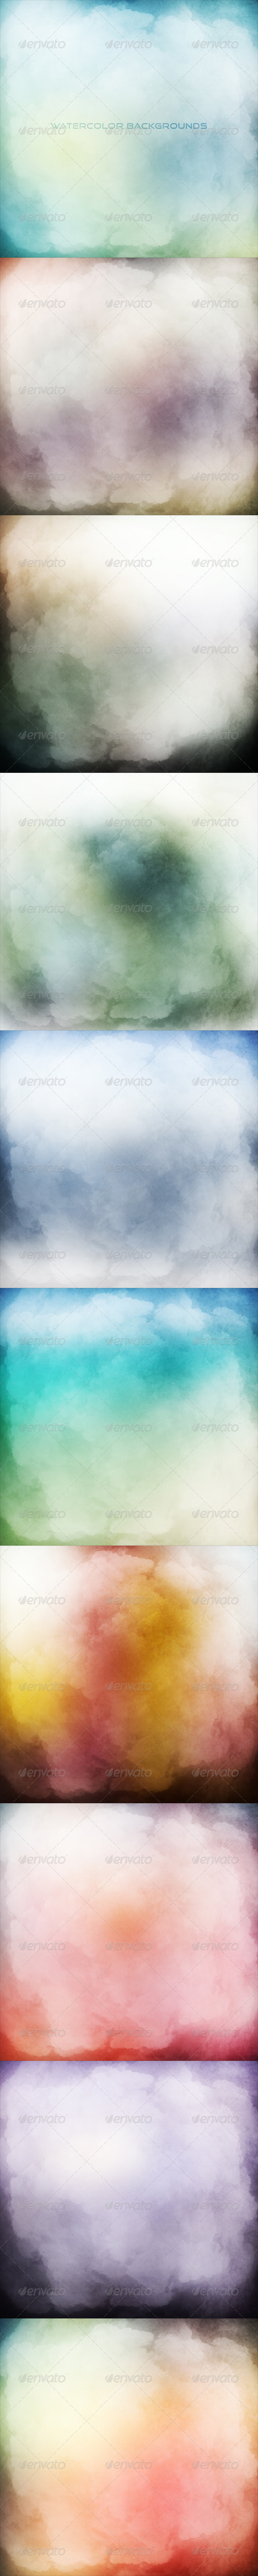 GraphicRiver Watercolor Backgrounds 7582747